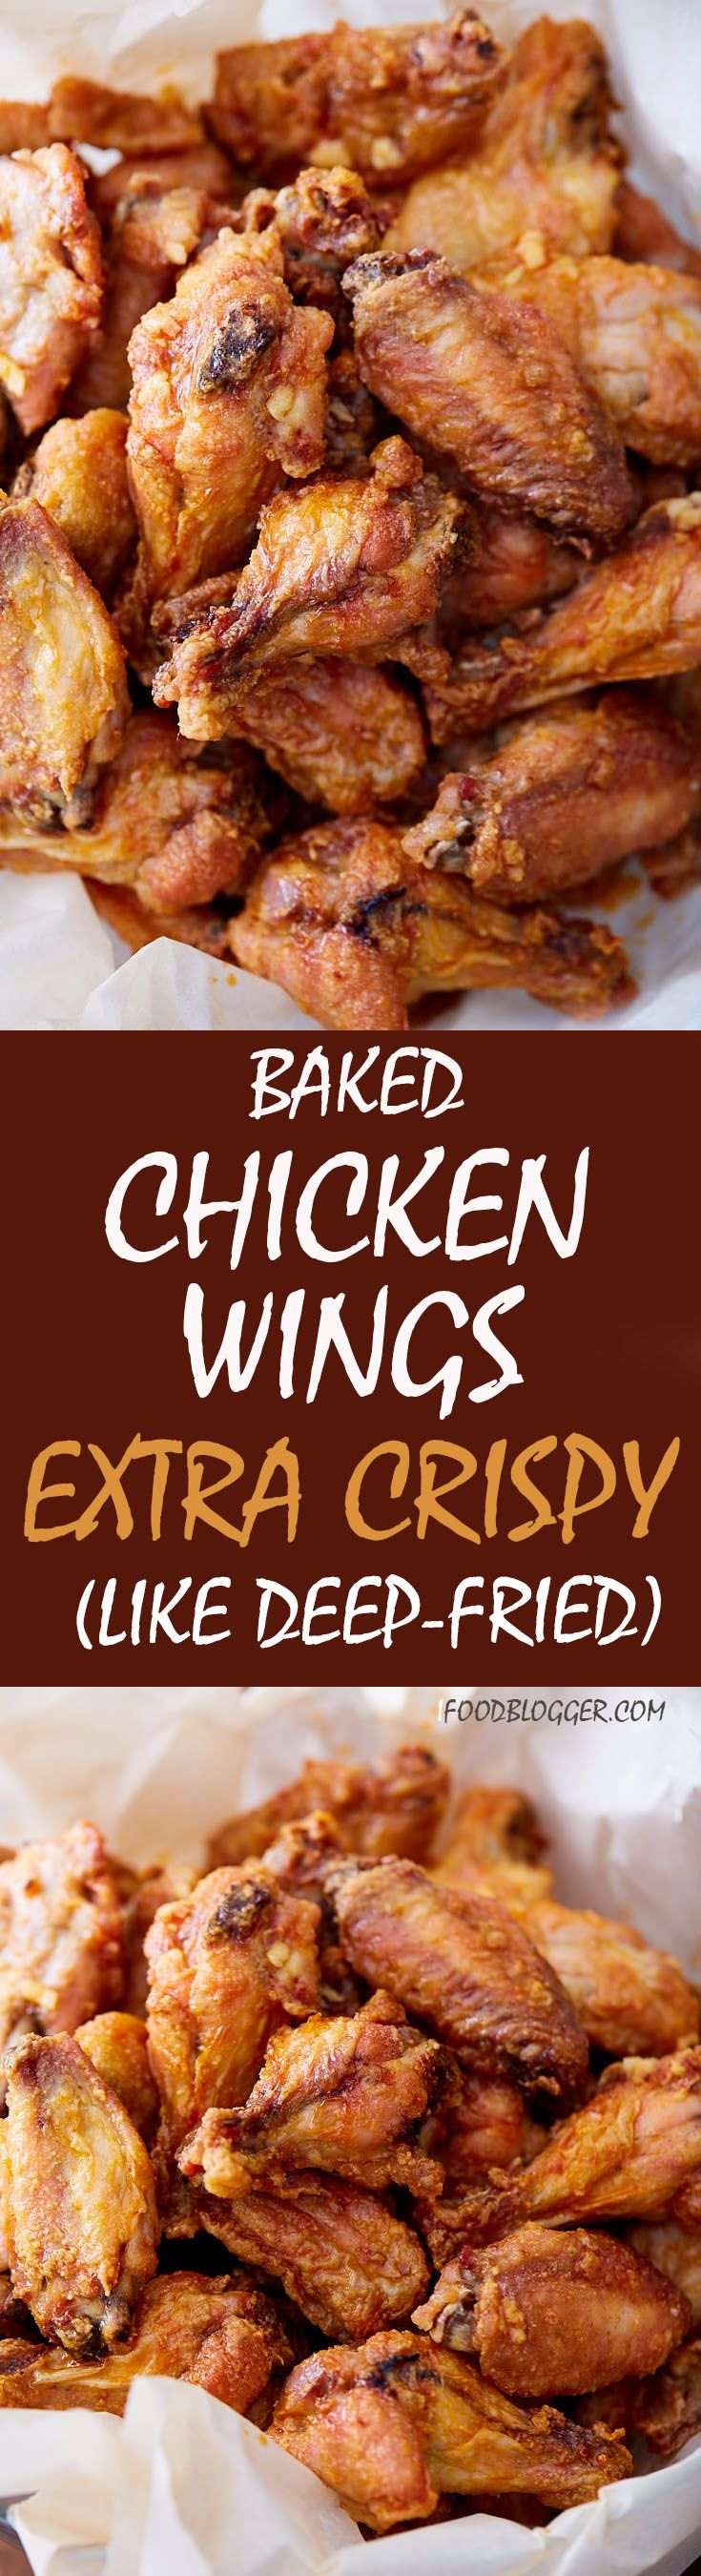 These baked #chicken wings are extra crispy on the outside and very juicy inside. They are like deep-fried wings, only without a mess and added calories. Oh, and they only take 30 minutes to bake.